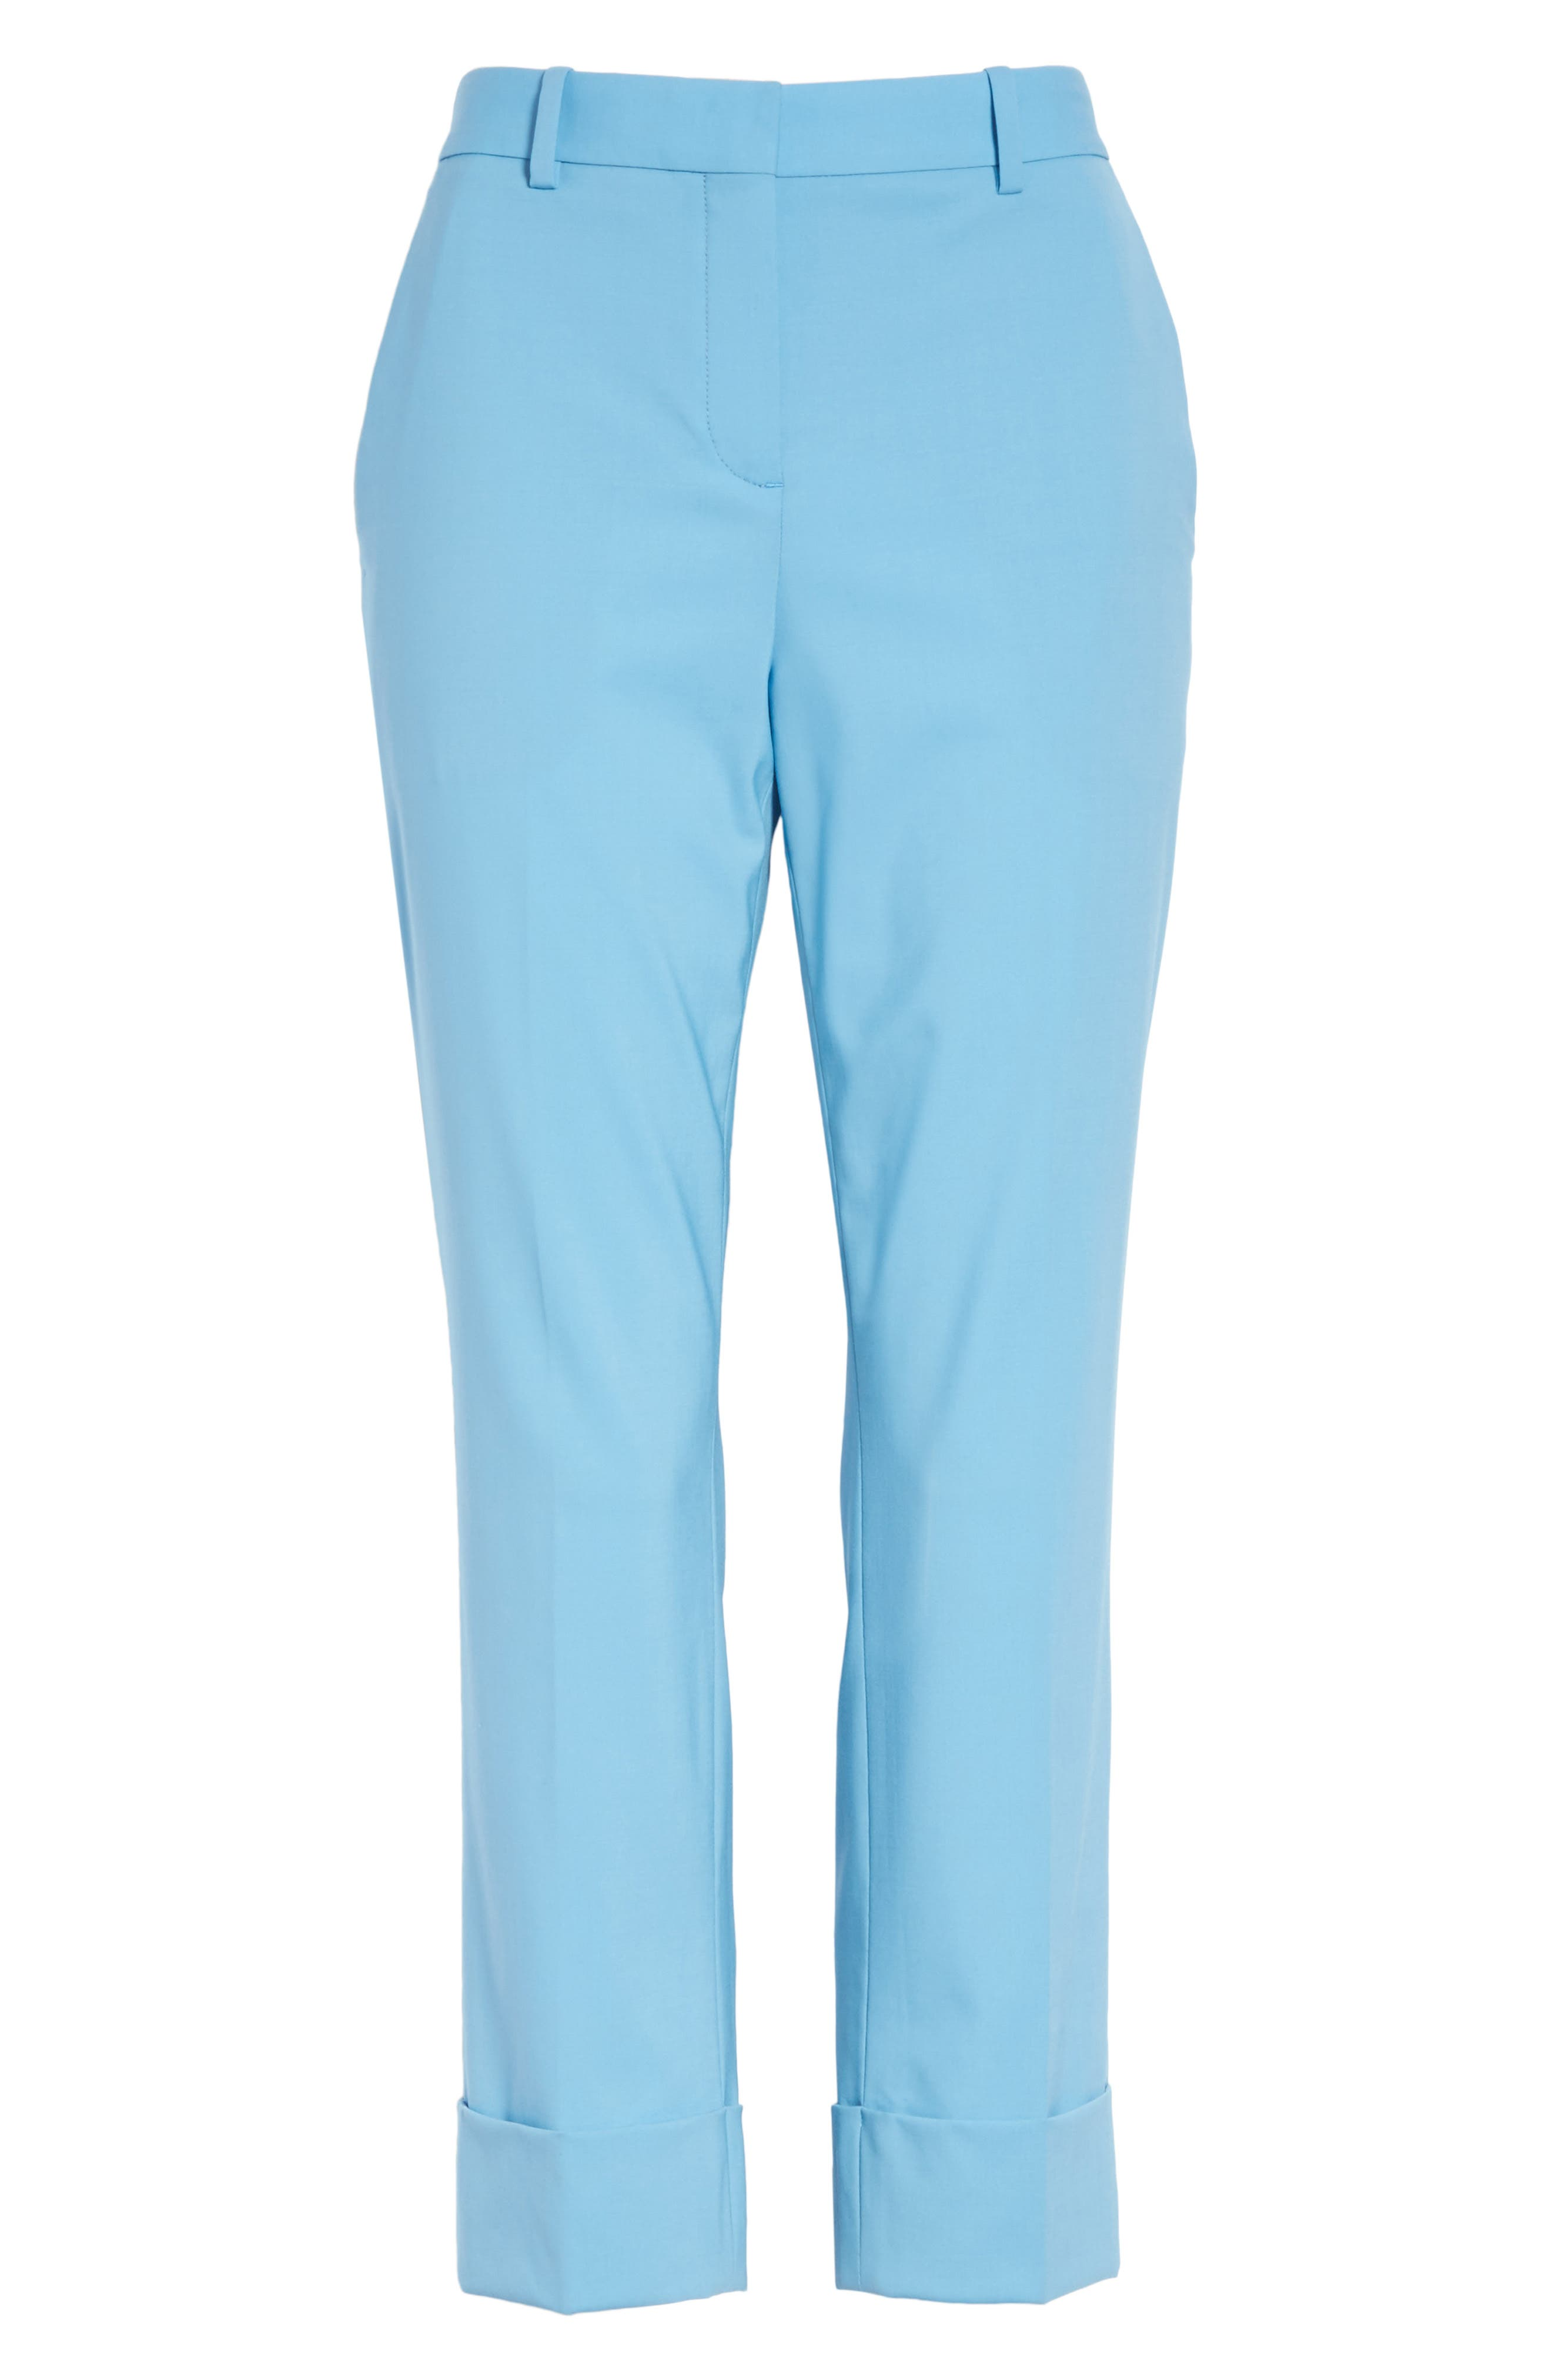 Cuffed Stretch Wool Crop Pants,                             Alternate thumbnail 6, color,                             Blue Robin